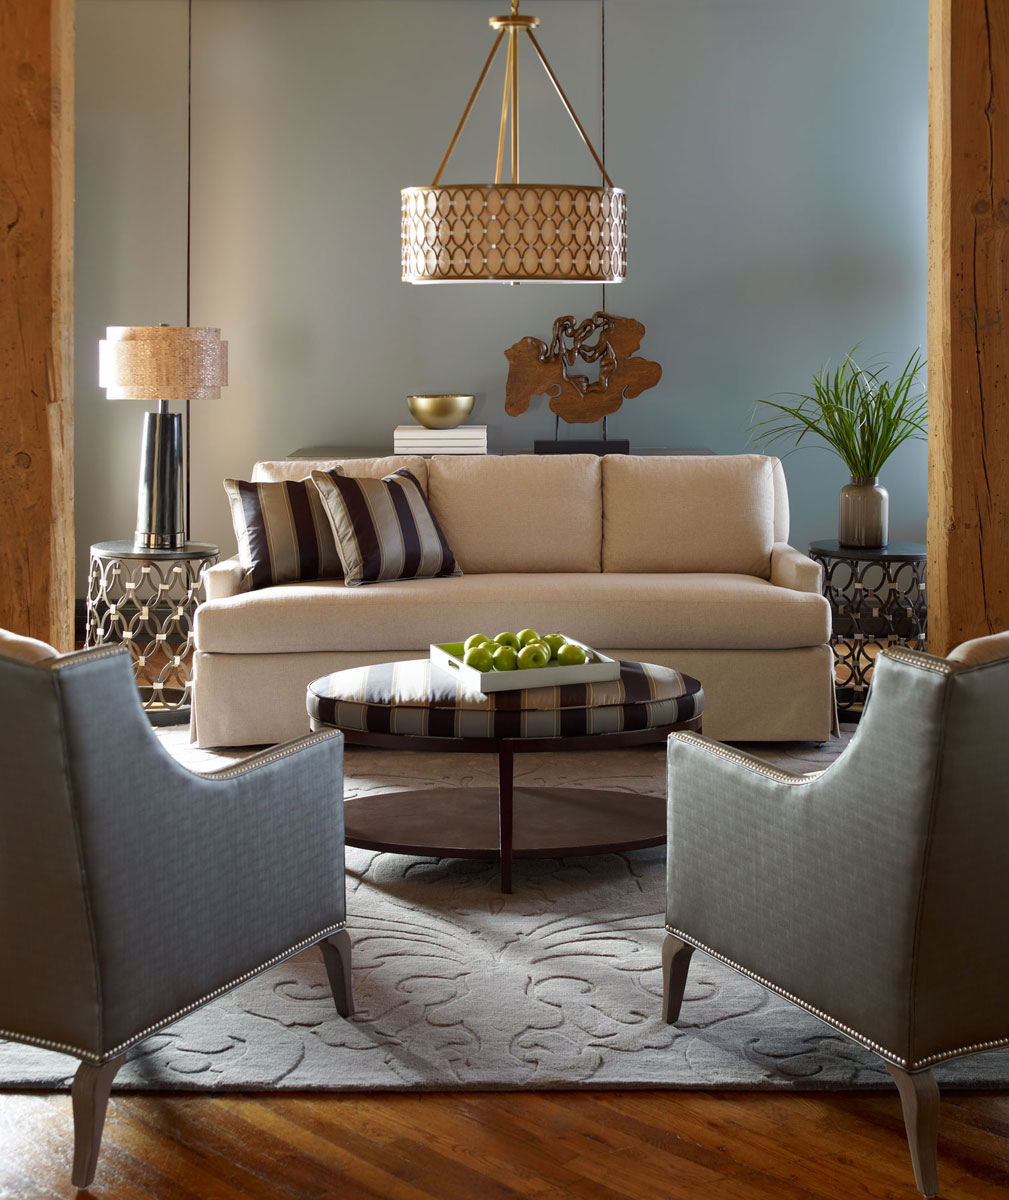 Modern Furniture: 2013 Candice Olson\'s Living Room Furniture Collection